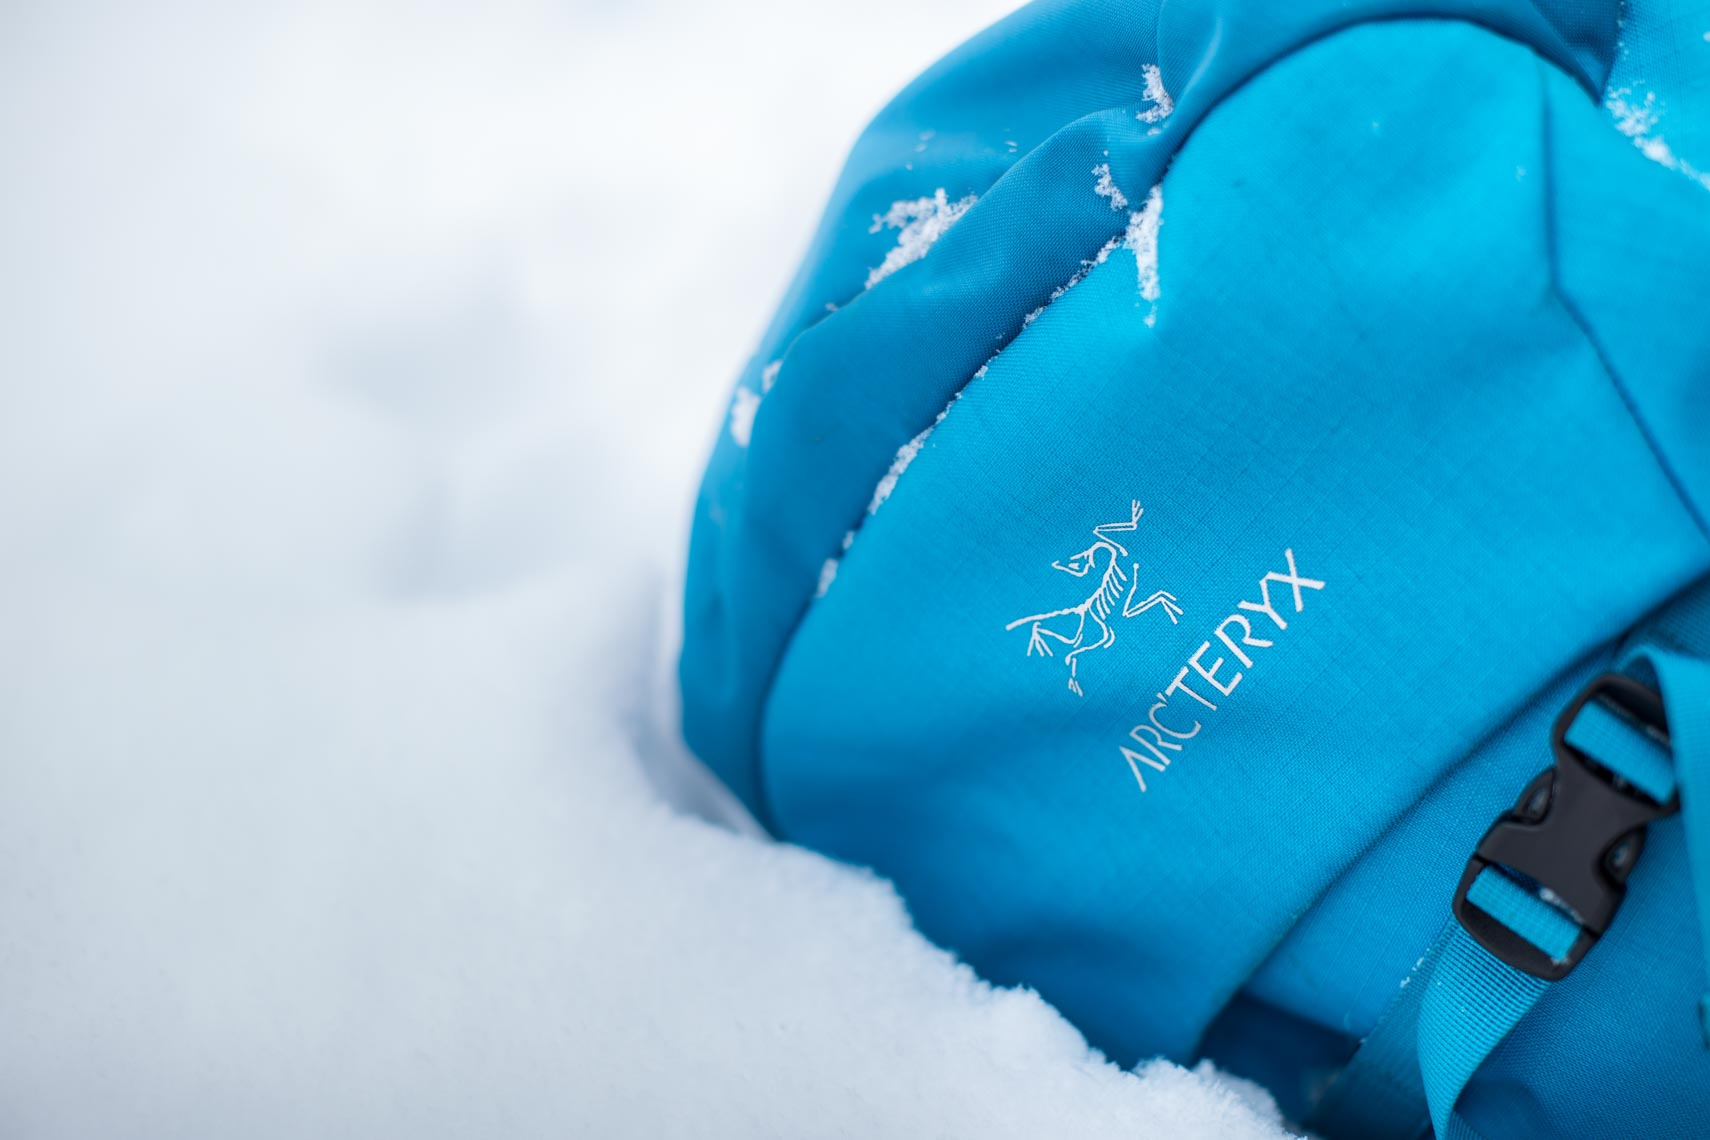 Arcteryx logo on blue backpack in the snow by product photographer